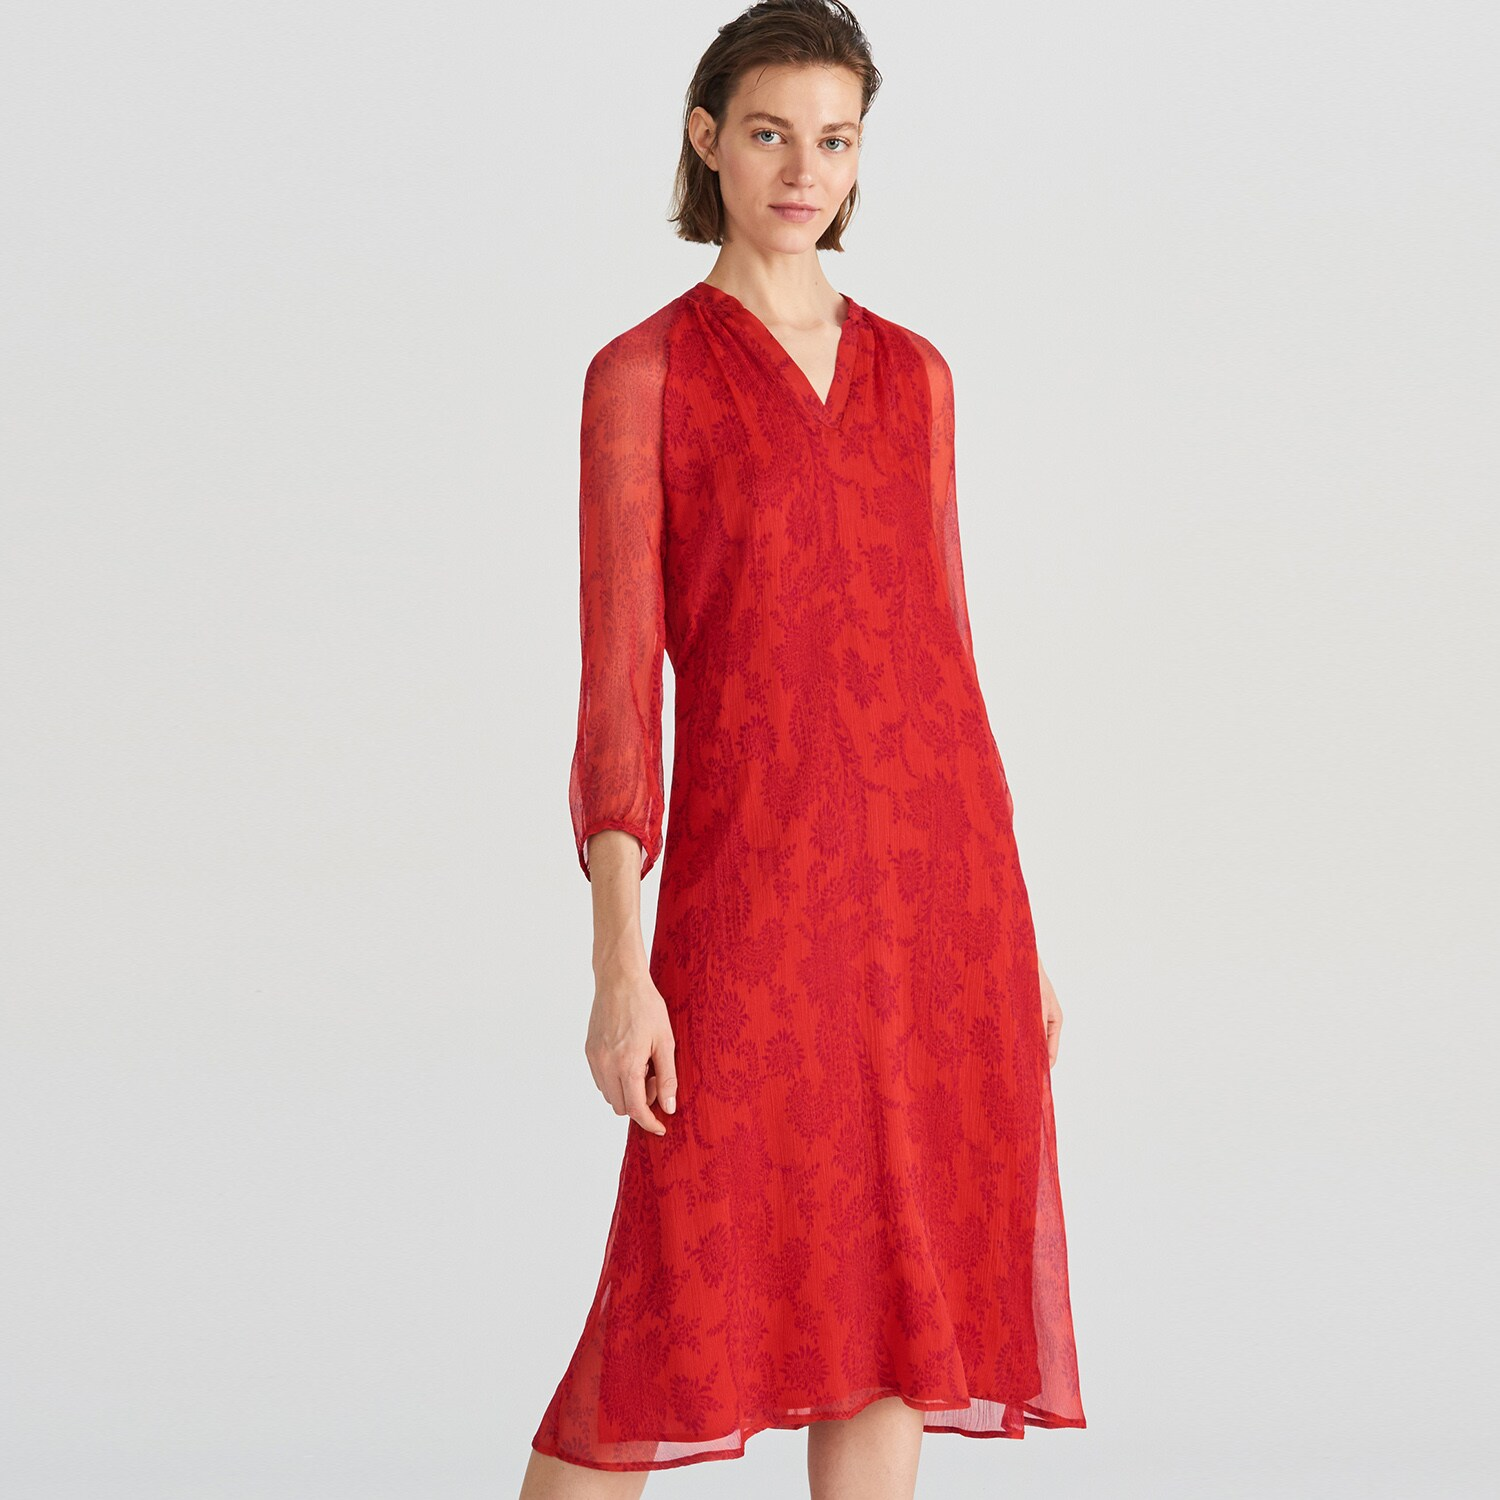 check out 156d4 890e5 Reserved - Reserved - Damen Kleid - Rot - Ceneo Deutschland